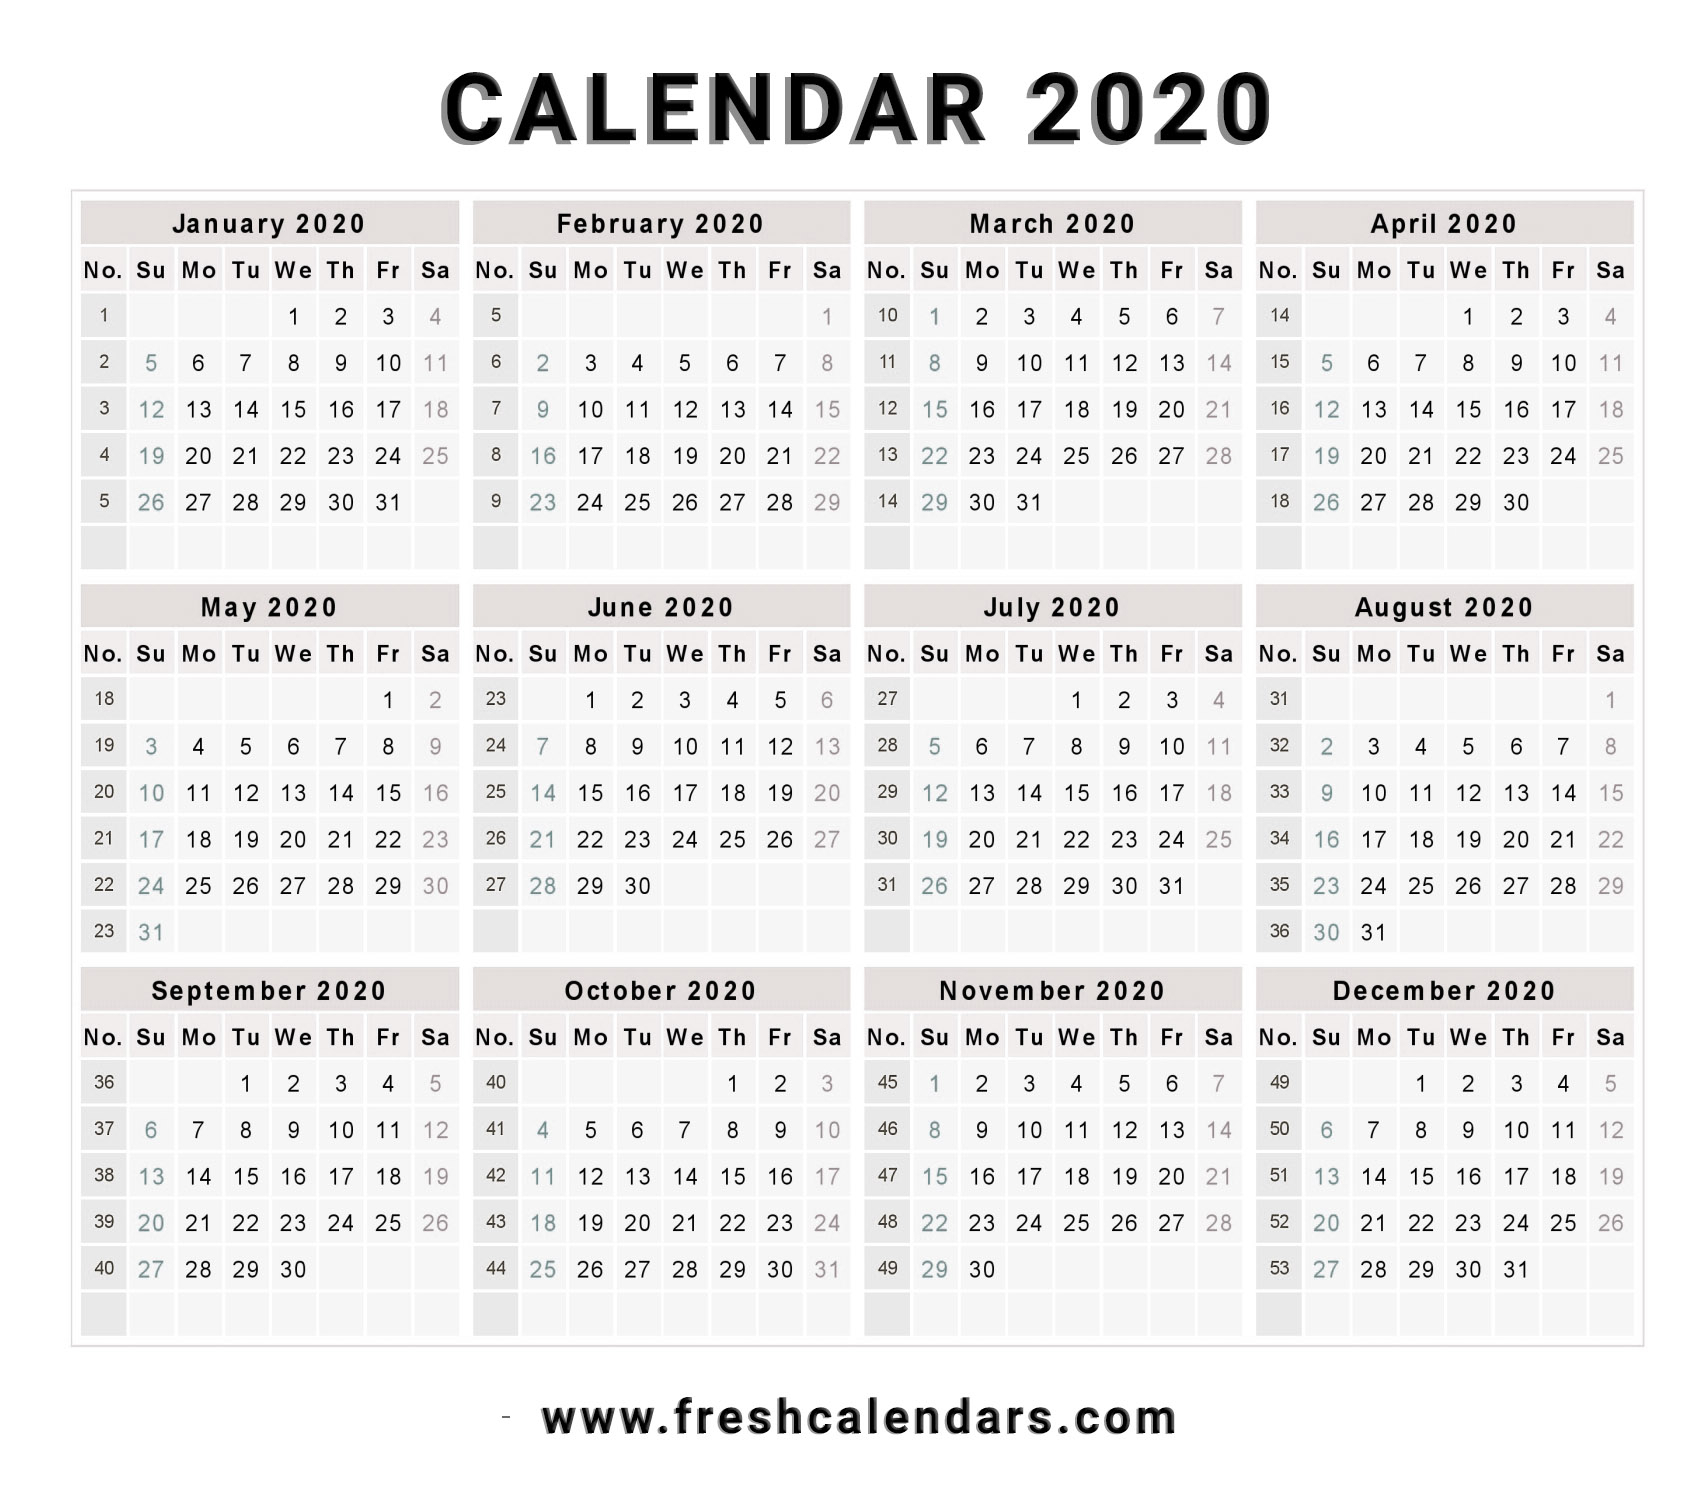 2020 Calendar with Print Free 2020 Calendars Without Downloading